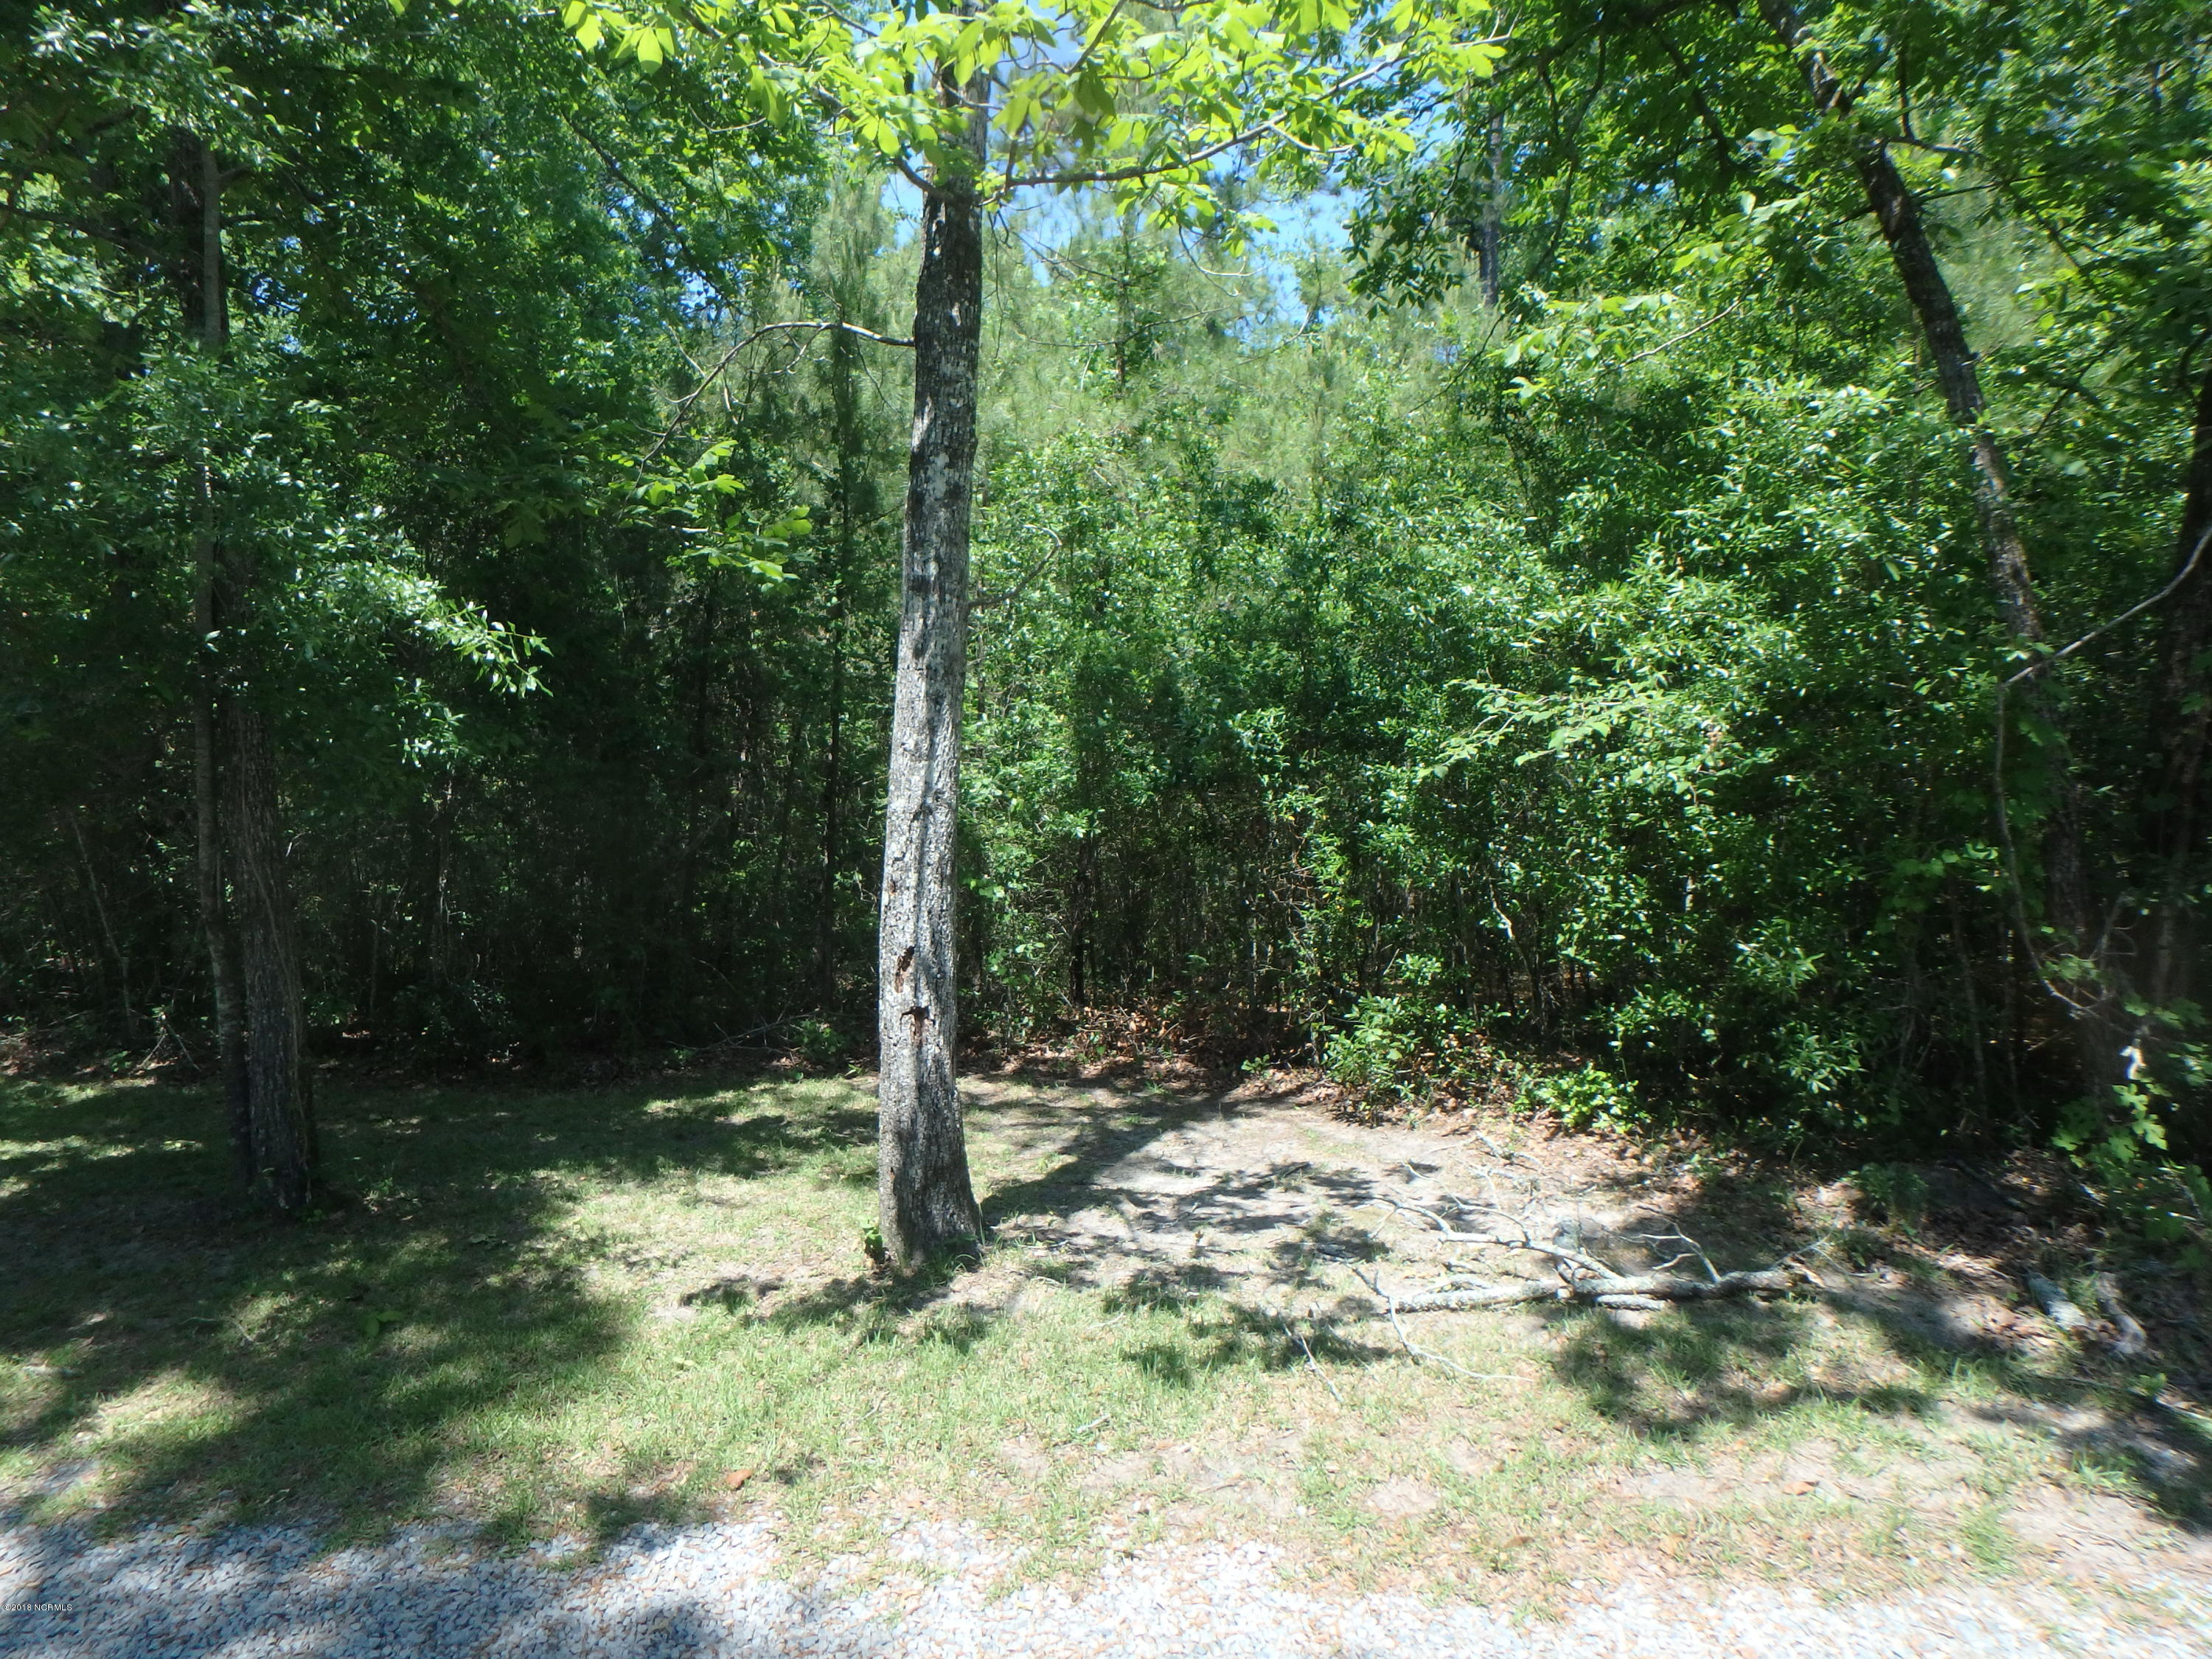 Lot 5 Riverview Drive, Burgaw, North Carolina 28425, ,Undeveloped,For sale,Riverview,100115967